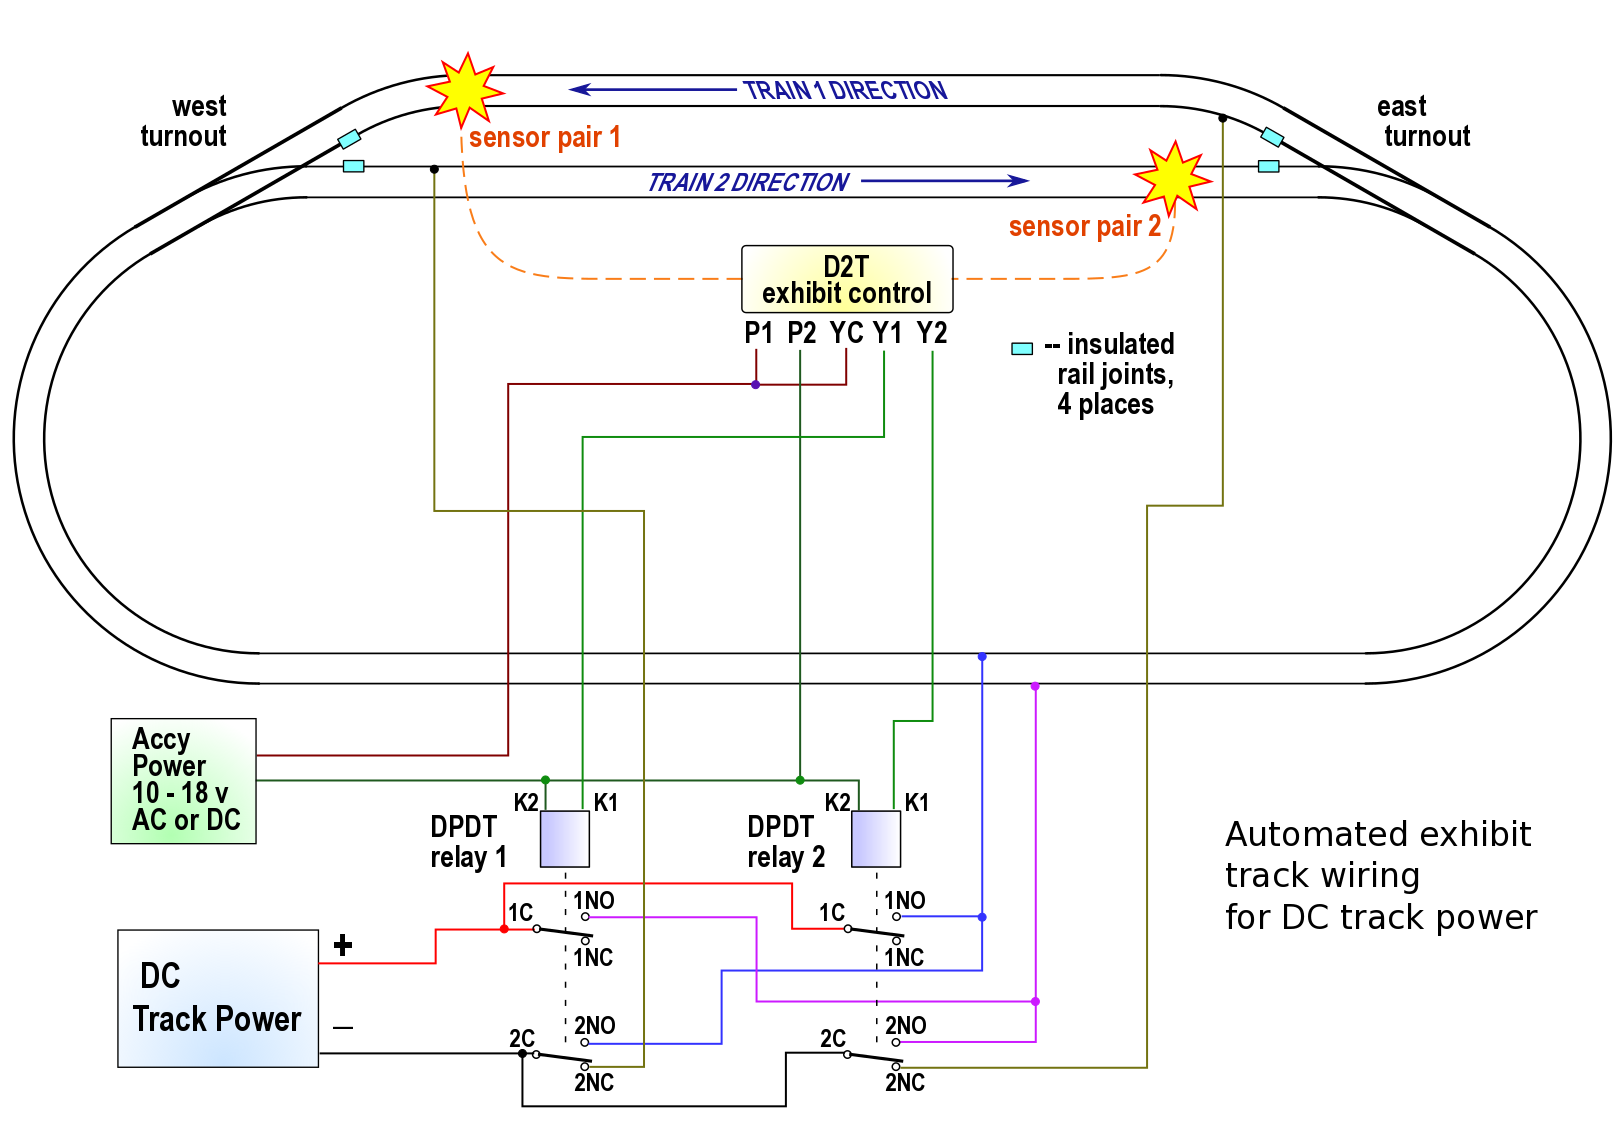 medium resolution of dc wiring for ho track schema wiring diagram ho track wiring details